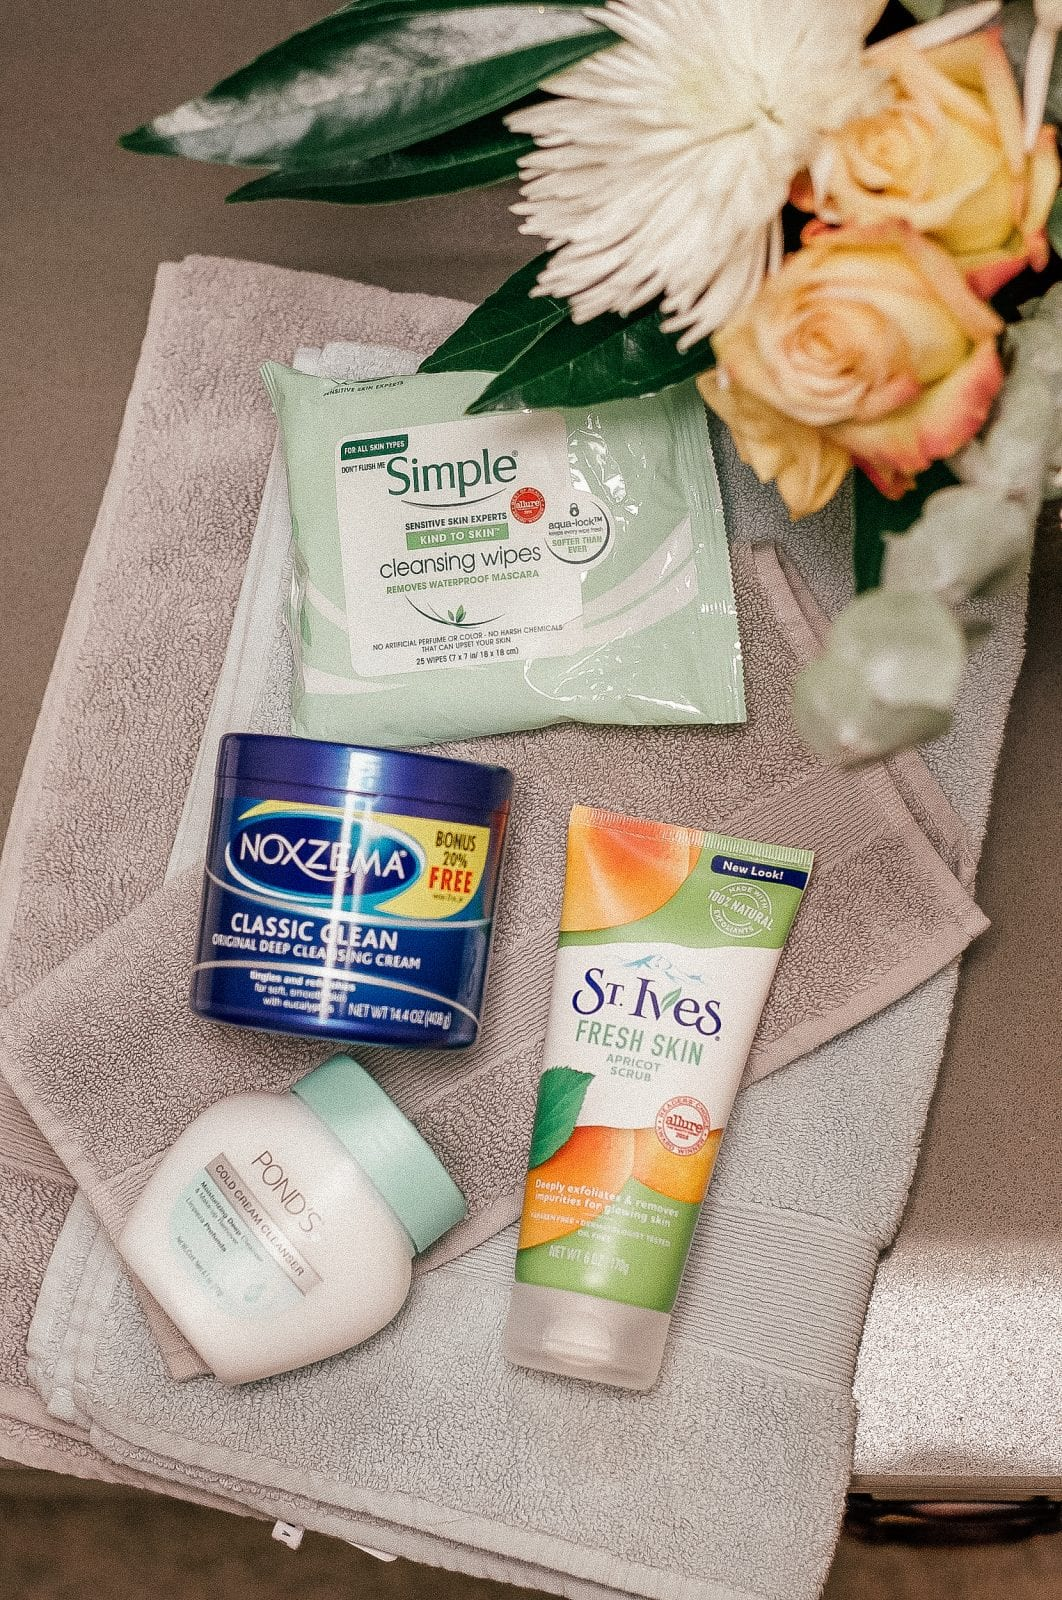 This is a flat lay shot of the entire Walmart skincare routine featuring Noxzema, St. Ives, Ponds and Simple.